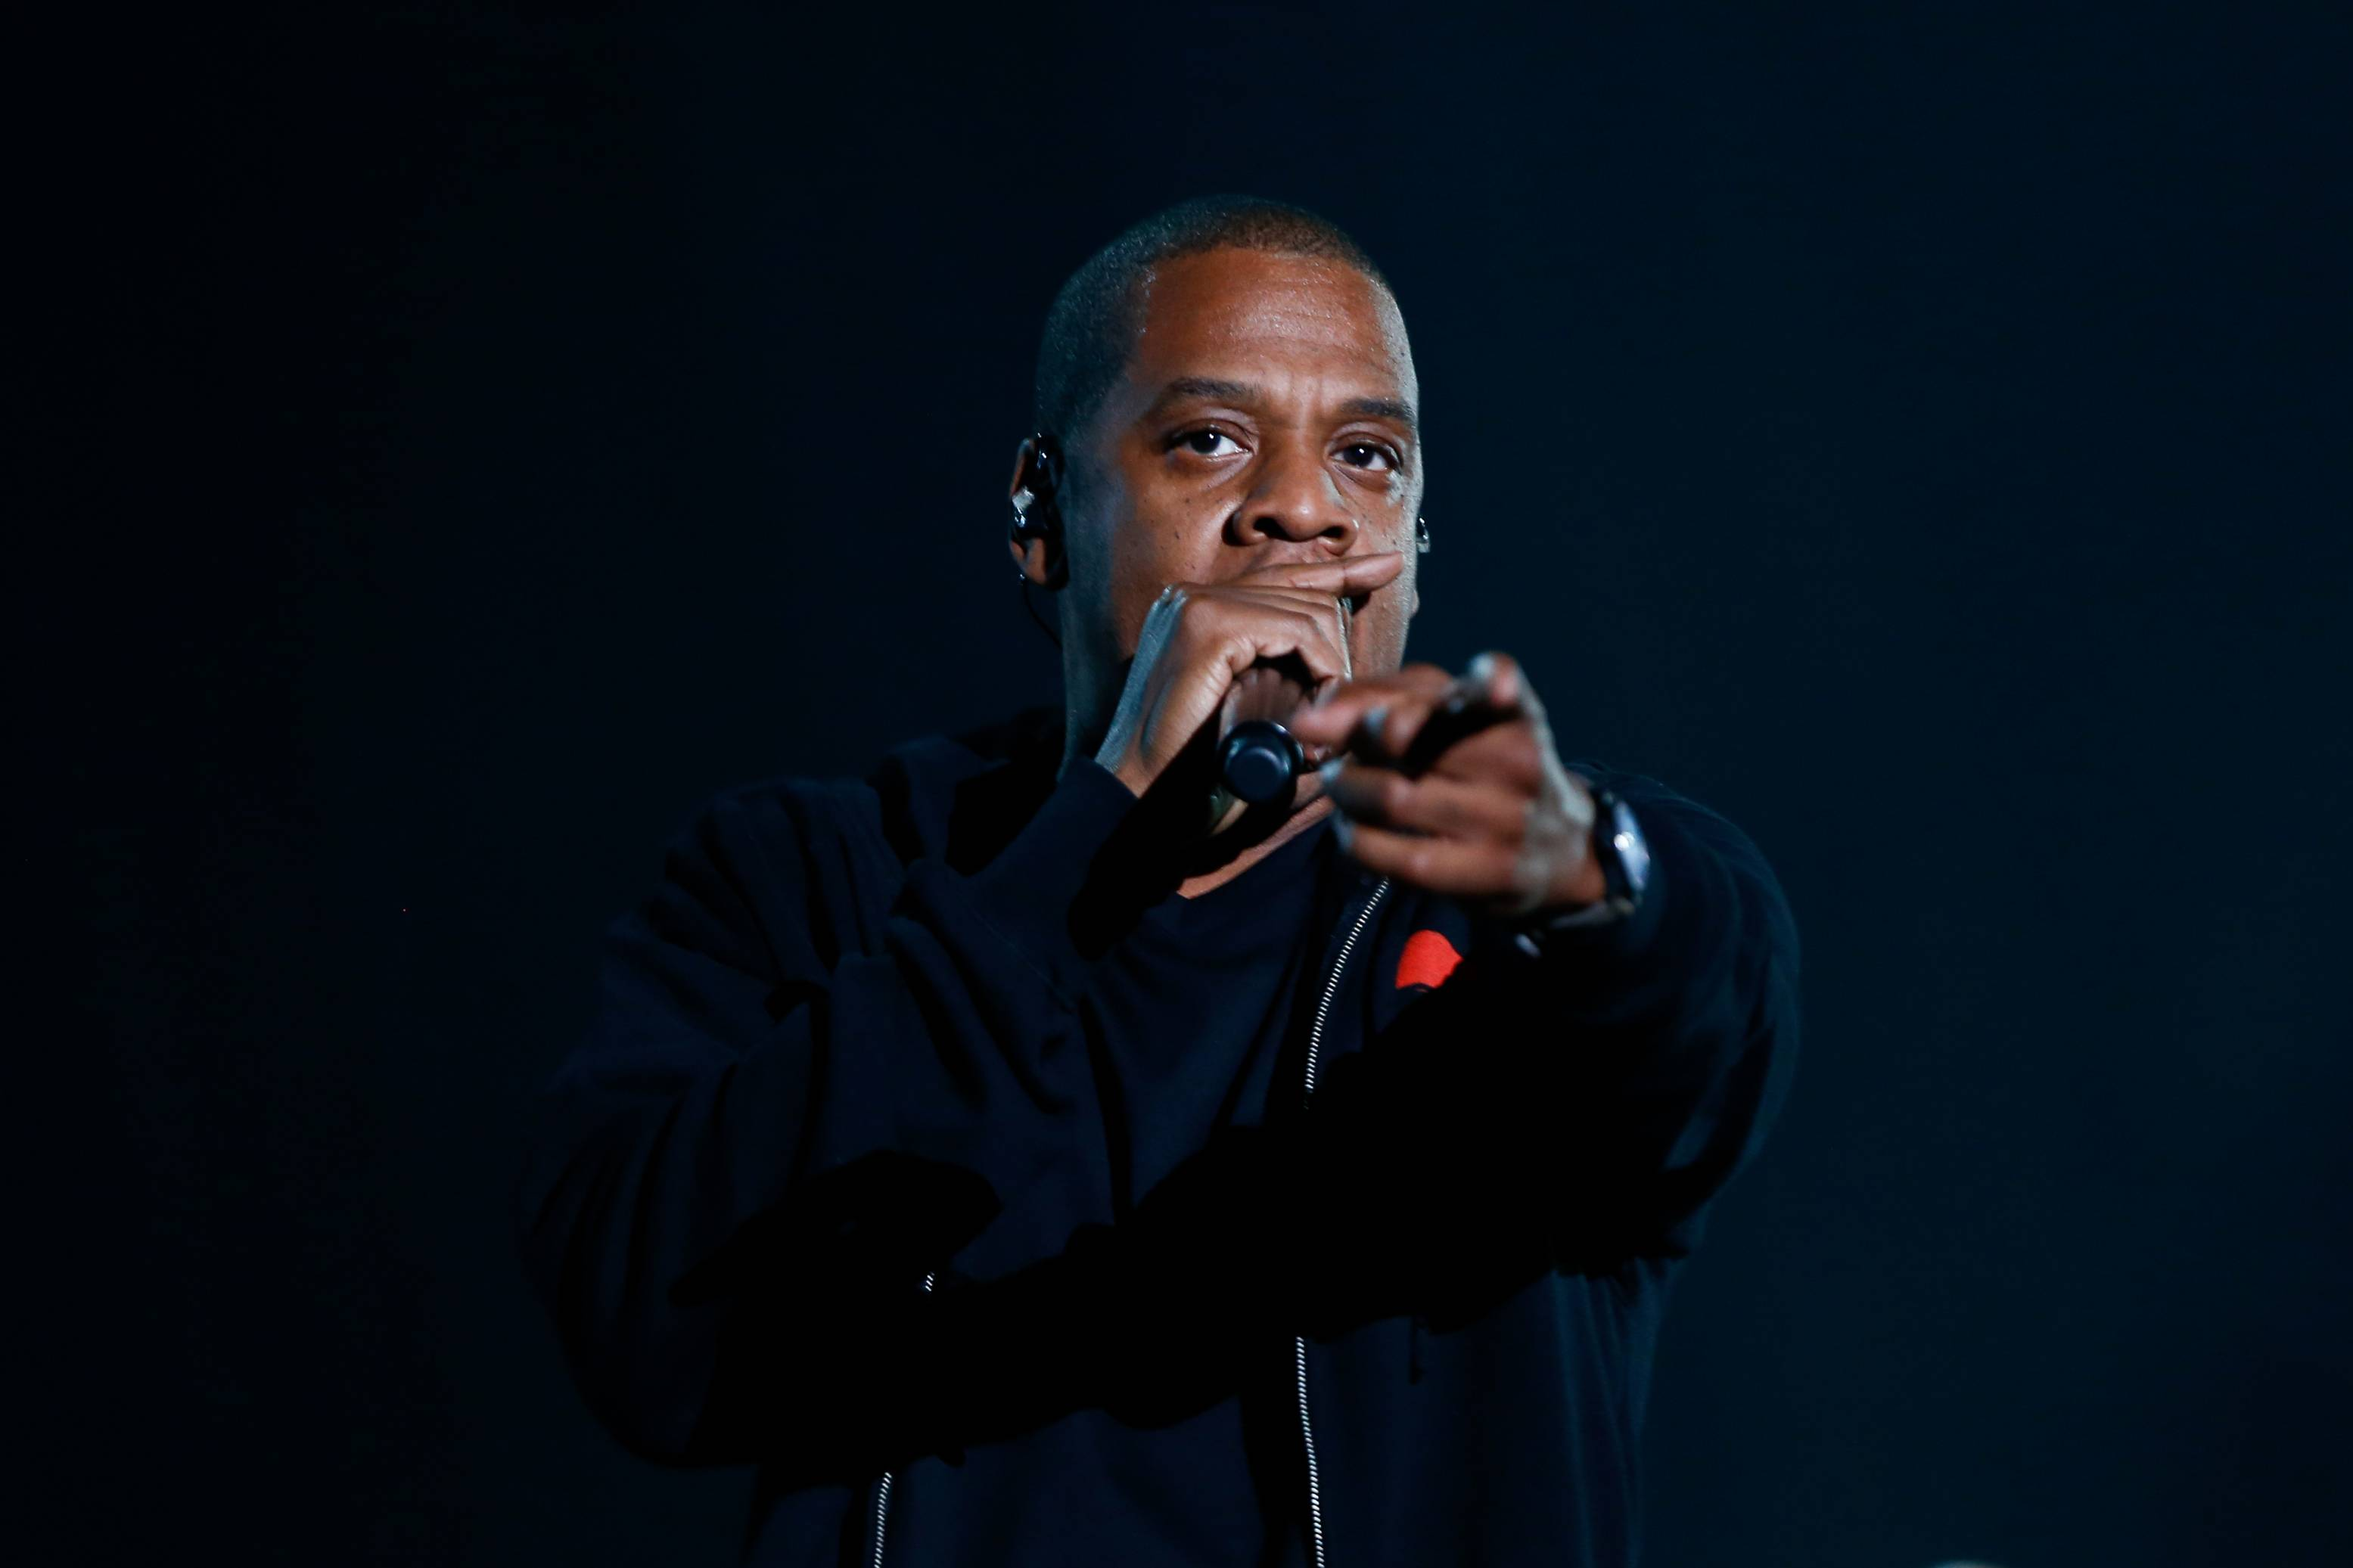 JAY-Z's investment story – how he built a $1 Billion empire